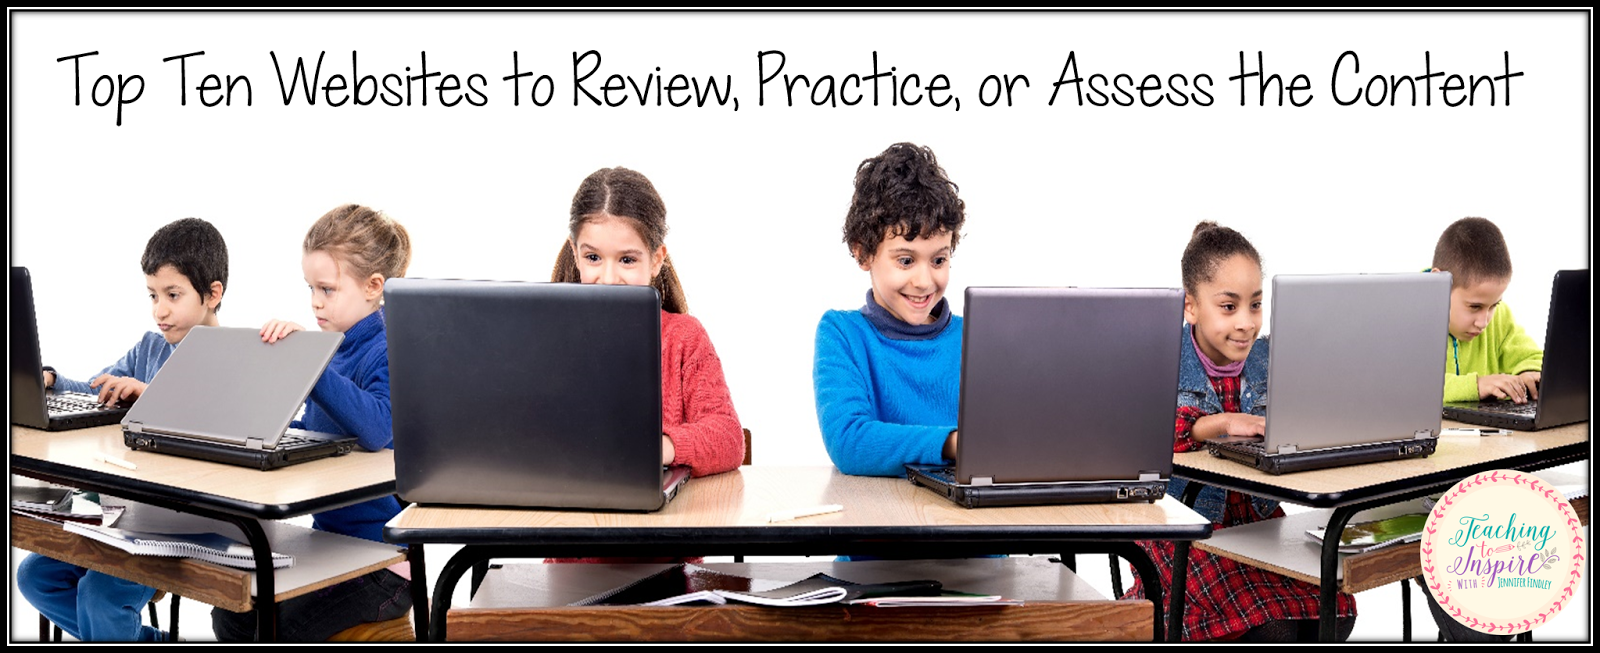 http://www.uppergradememoirs.com/2015/01/top-10-websites-to-review-practice-or.html